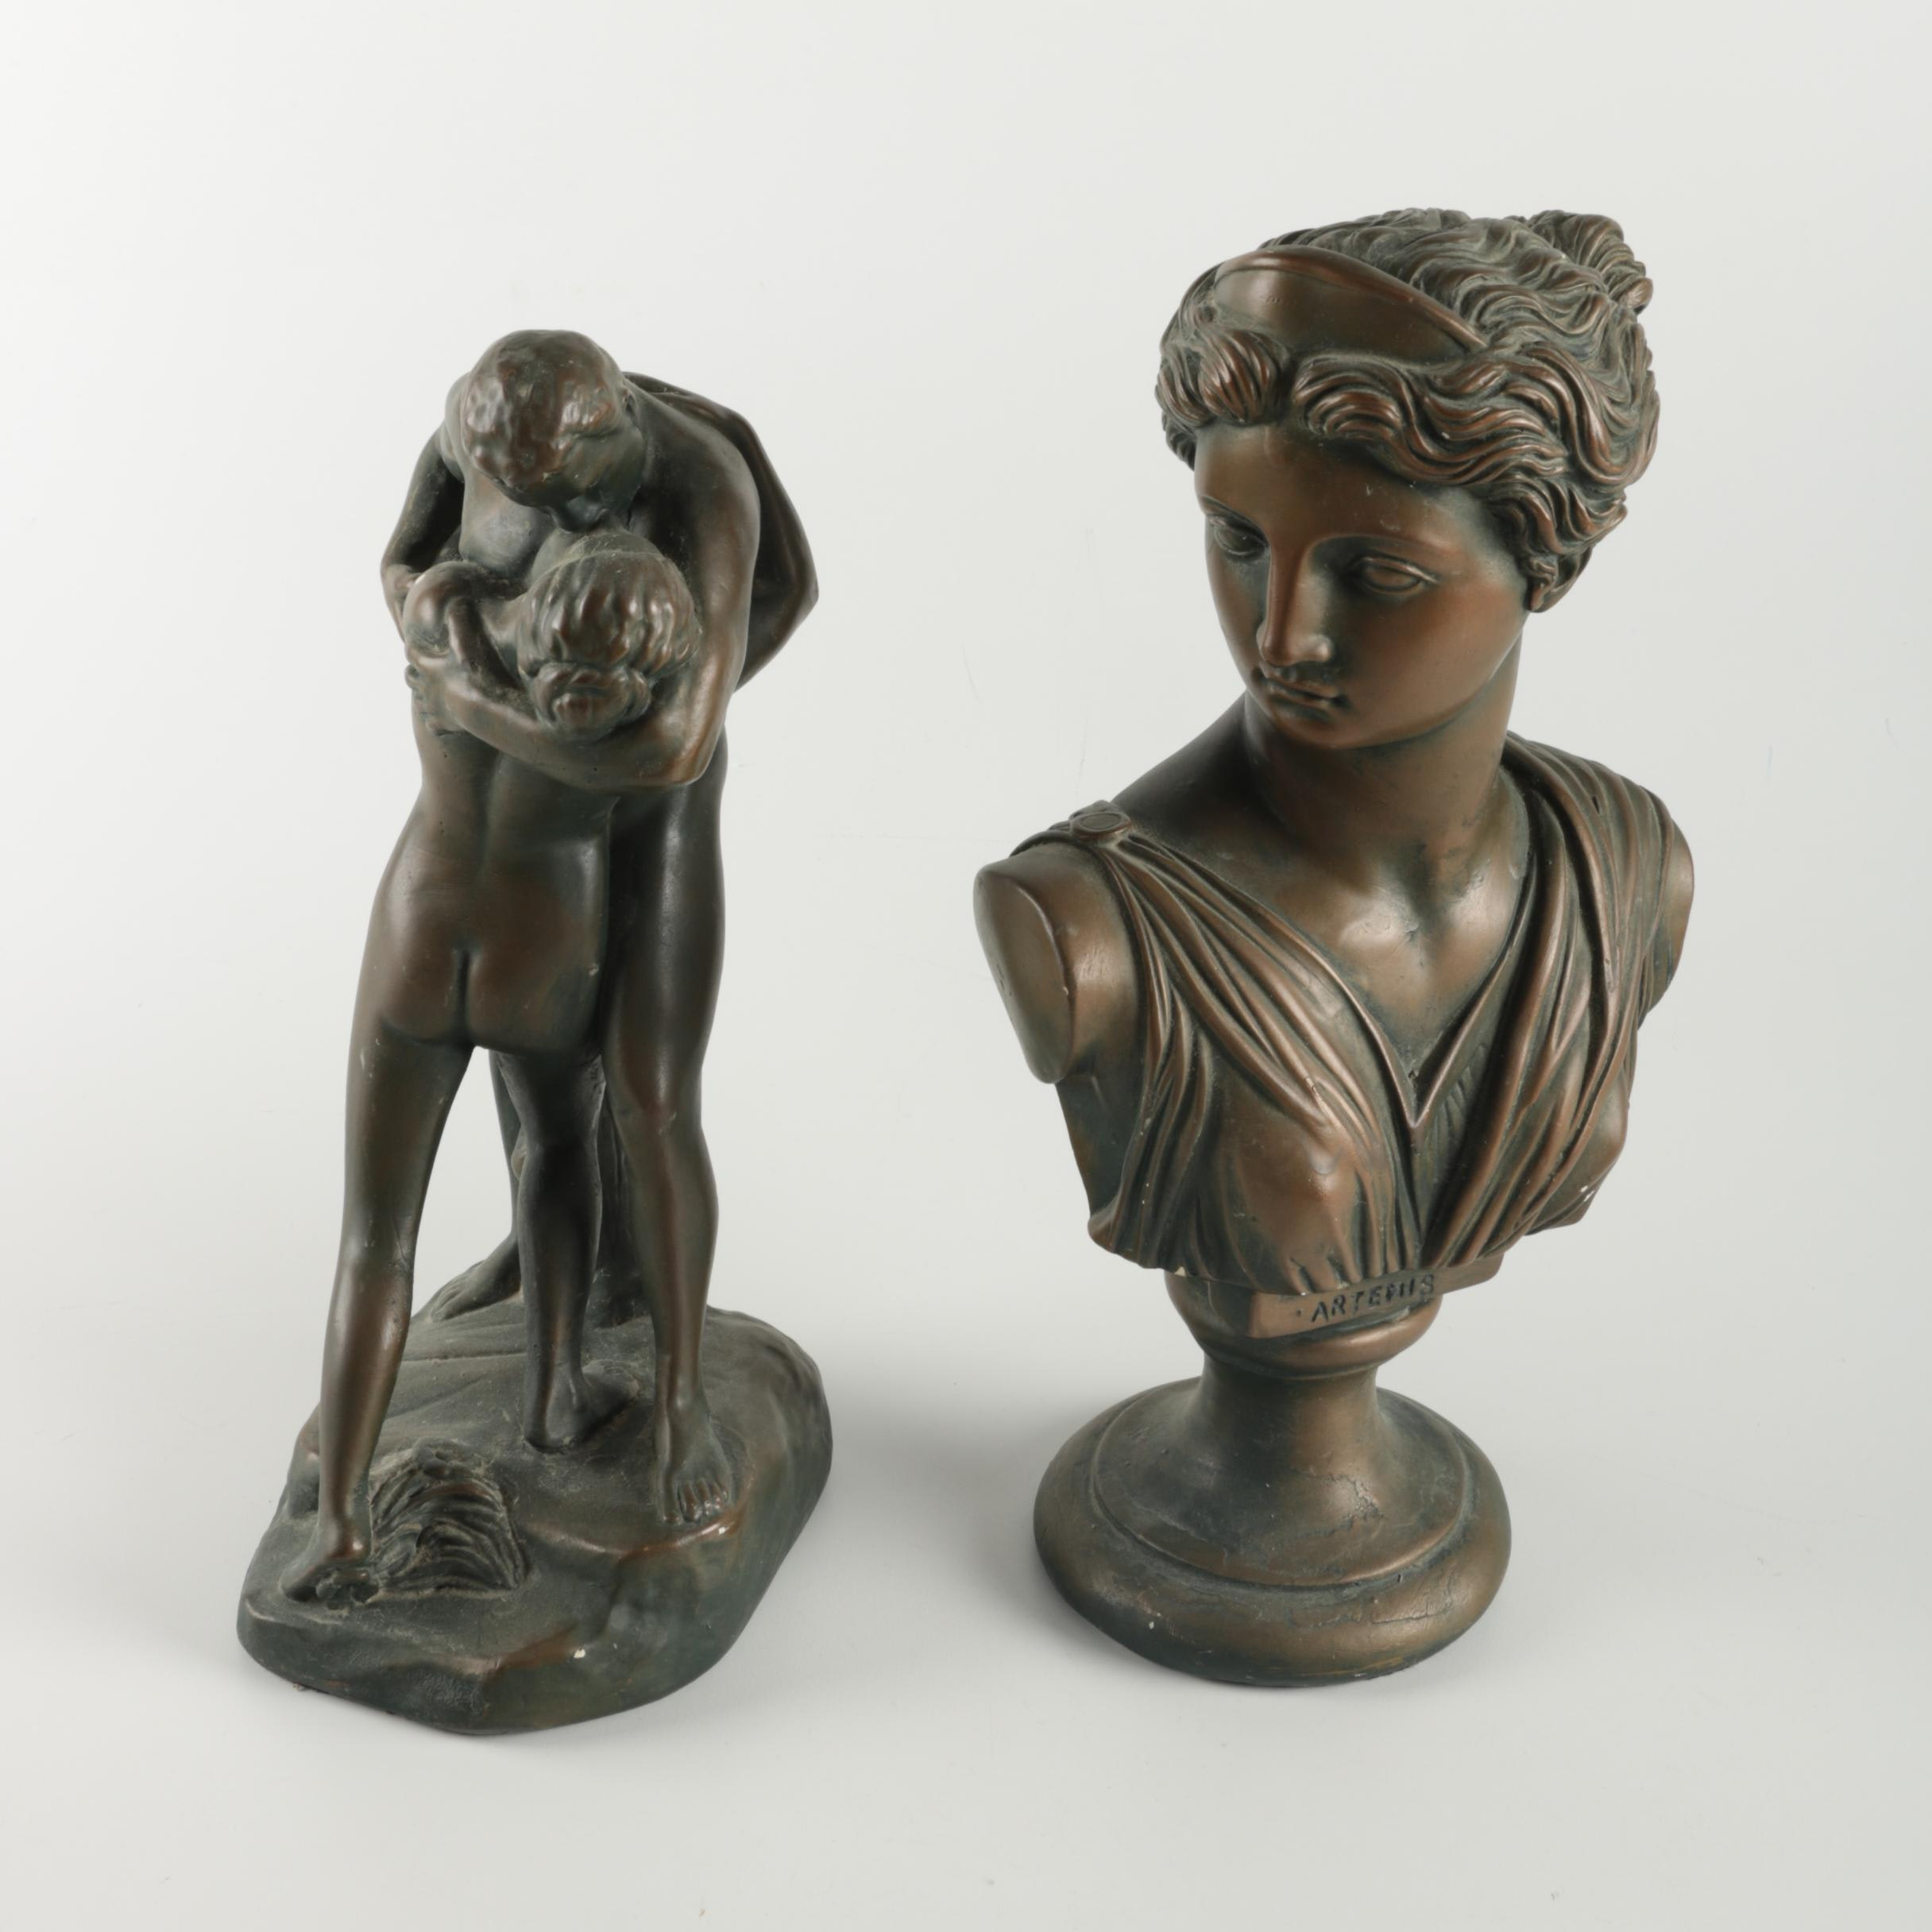 Alexander Backer Bronze Figurine and Bust of Artemis